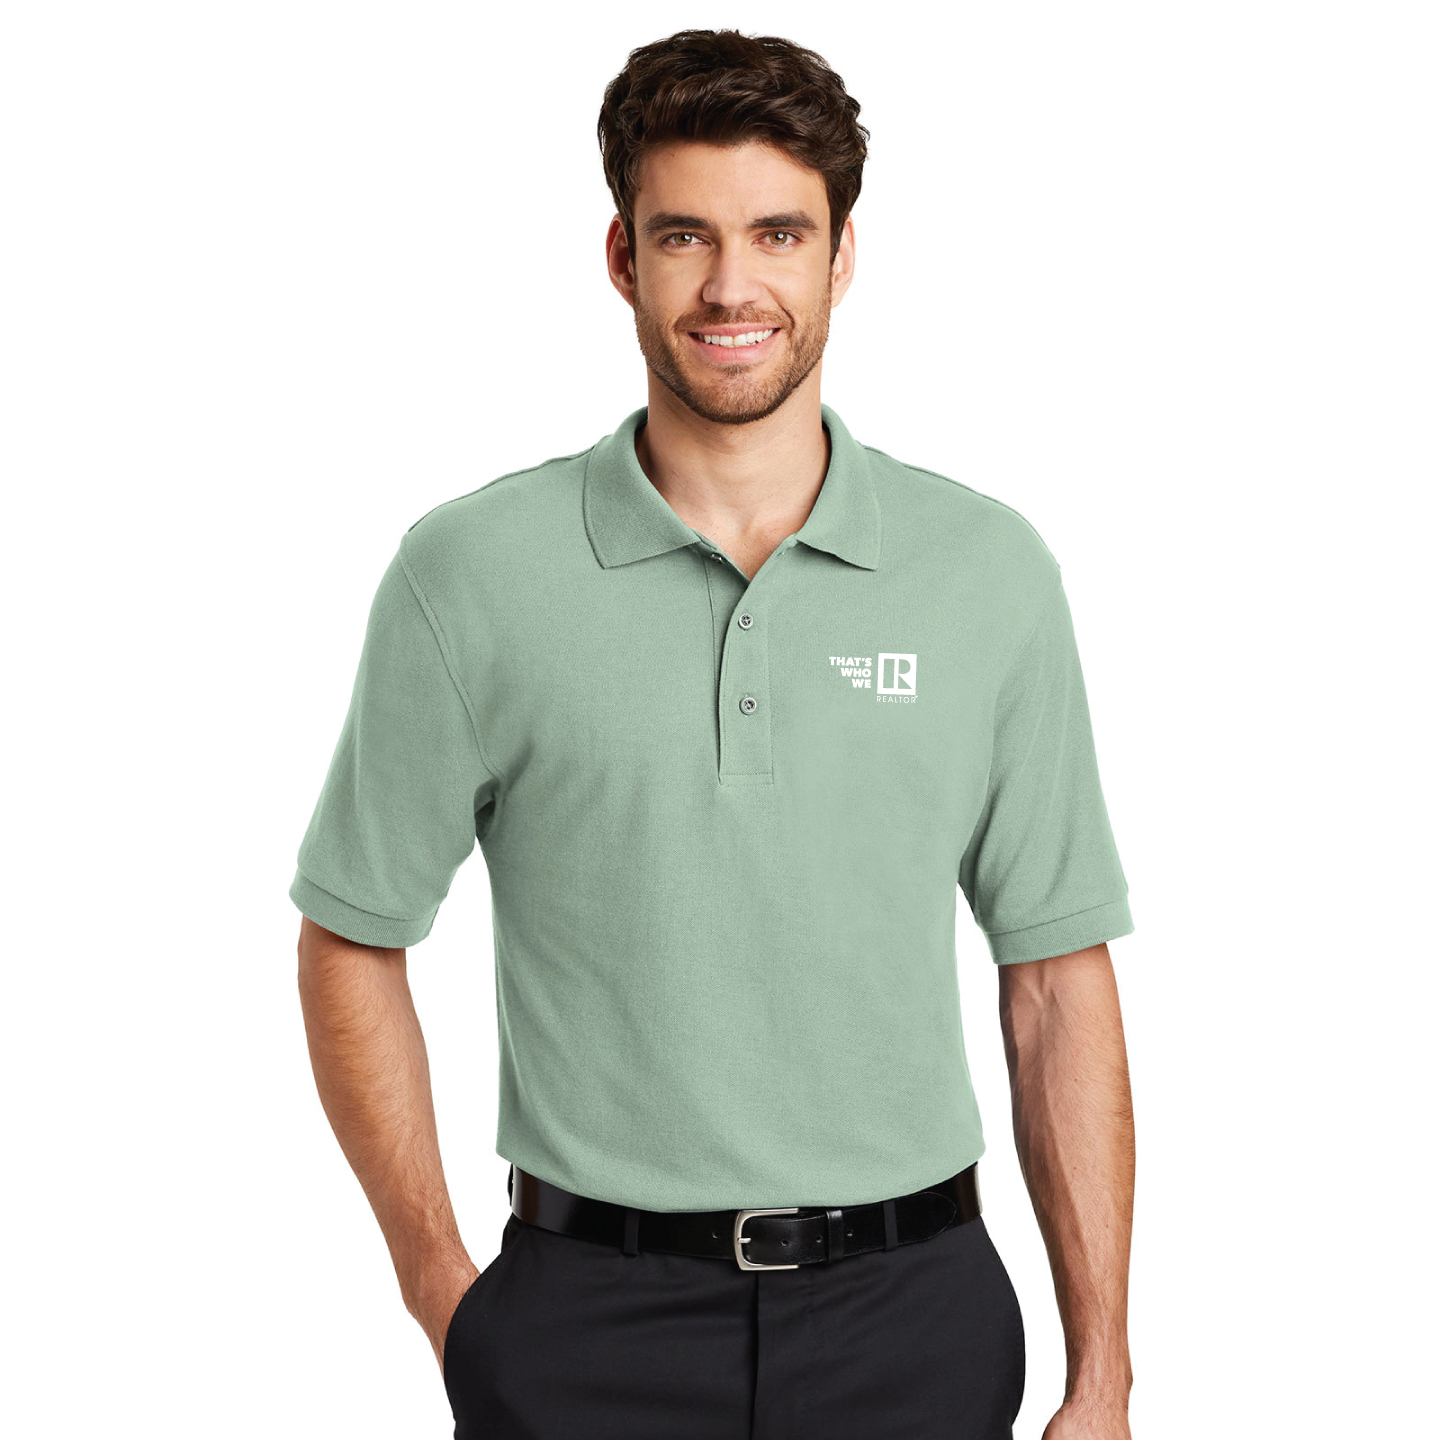 """Thats Who We R"" Mens Pique Polo Shirt twwr,ThatsWhoWeR,Thats,TWWR,ThatWho,ThatsWho,Twwr,Thats,Whos,We,Ares,Twwr,Thats,Whos,Ares,Golfs, Shirts, Collared, Polos, Plackets"